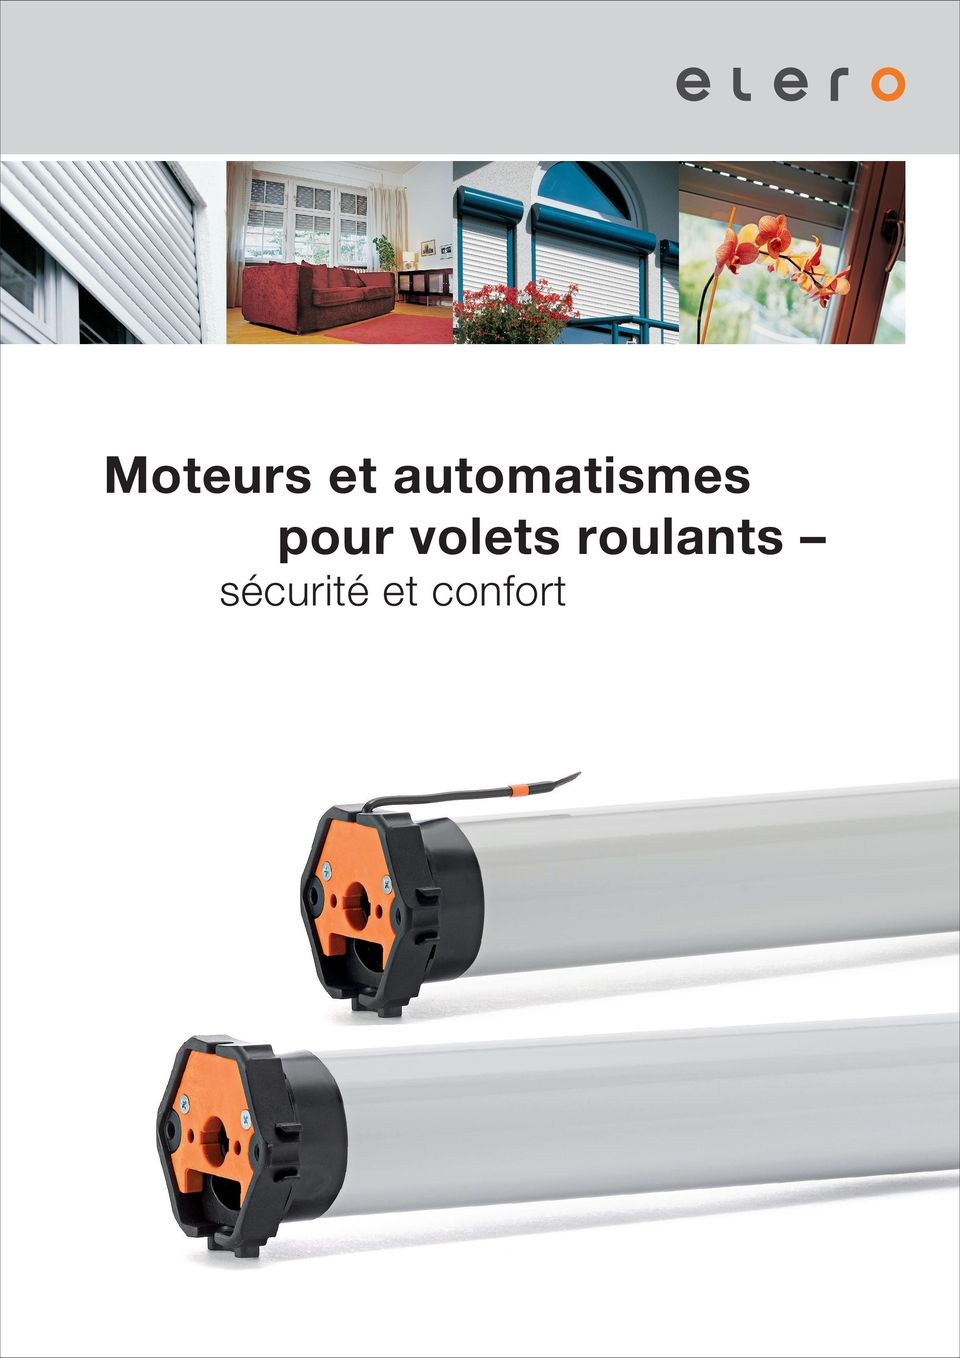 volets roulants www.